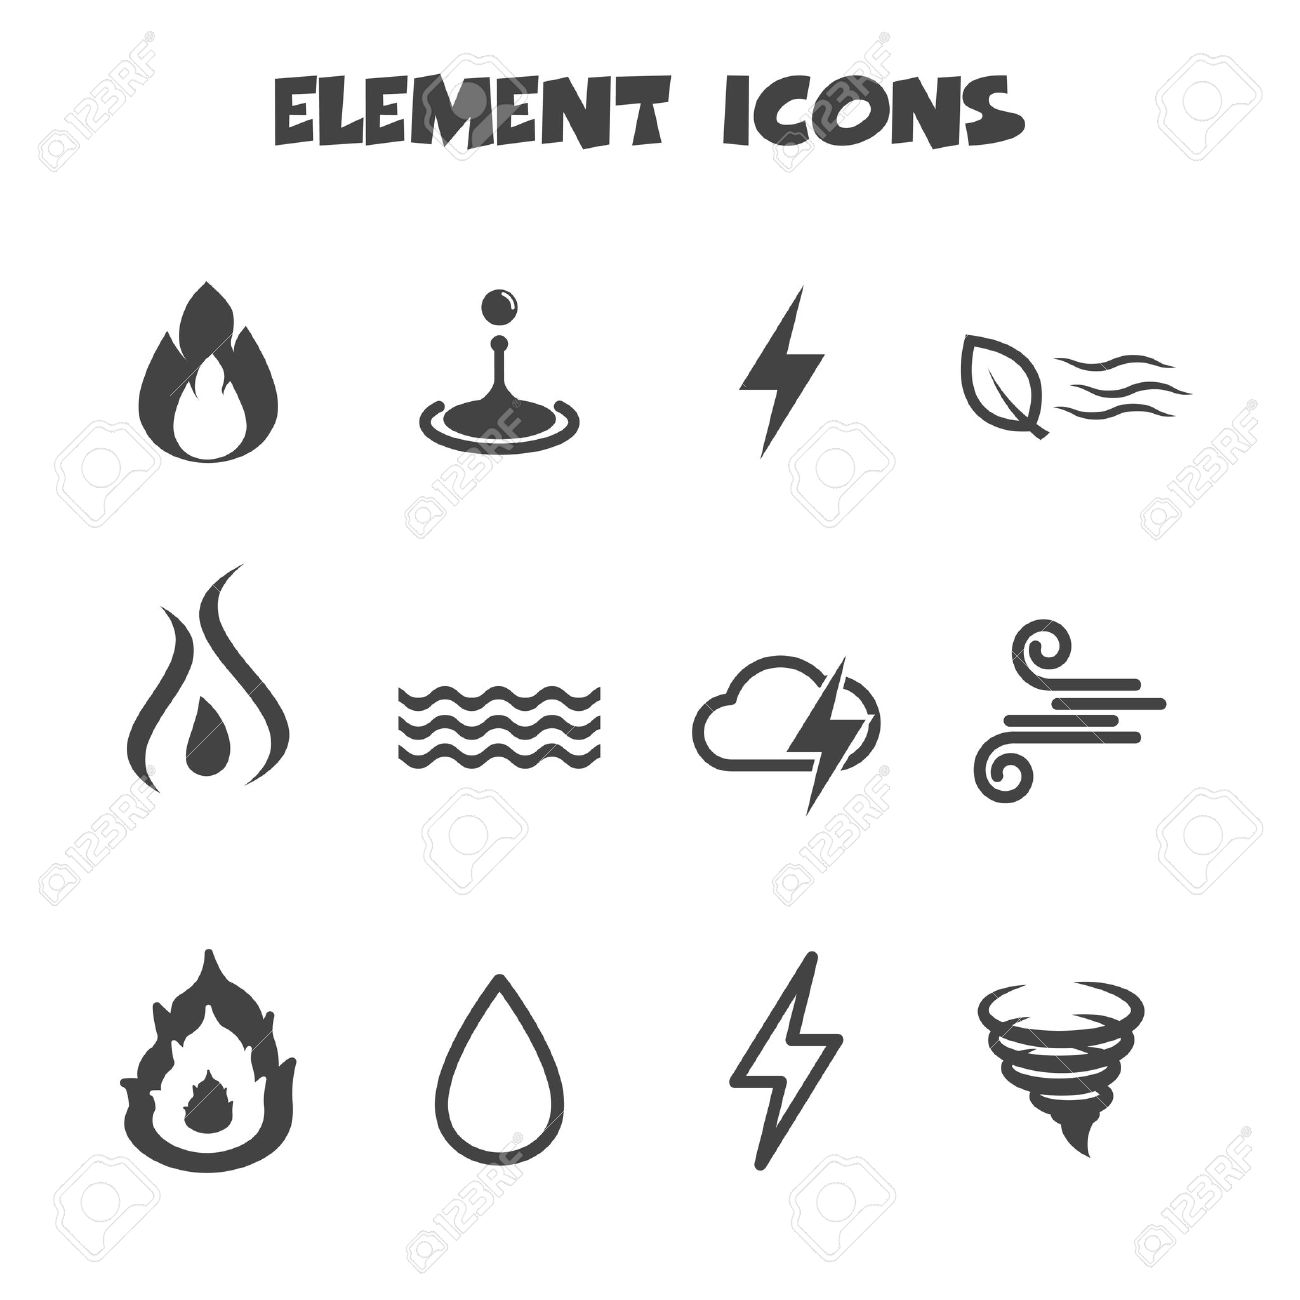 Element icons symbols royalty free cliparts vectors and stock element icons symbols stock vector 26617860 biocorpaavc Images